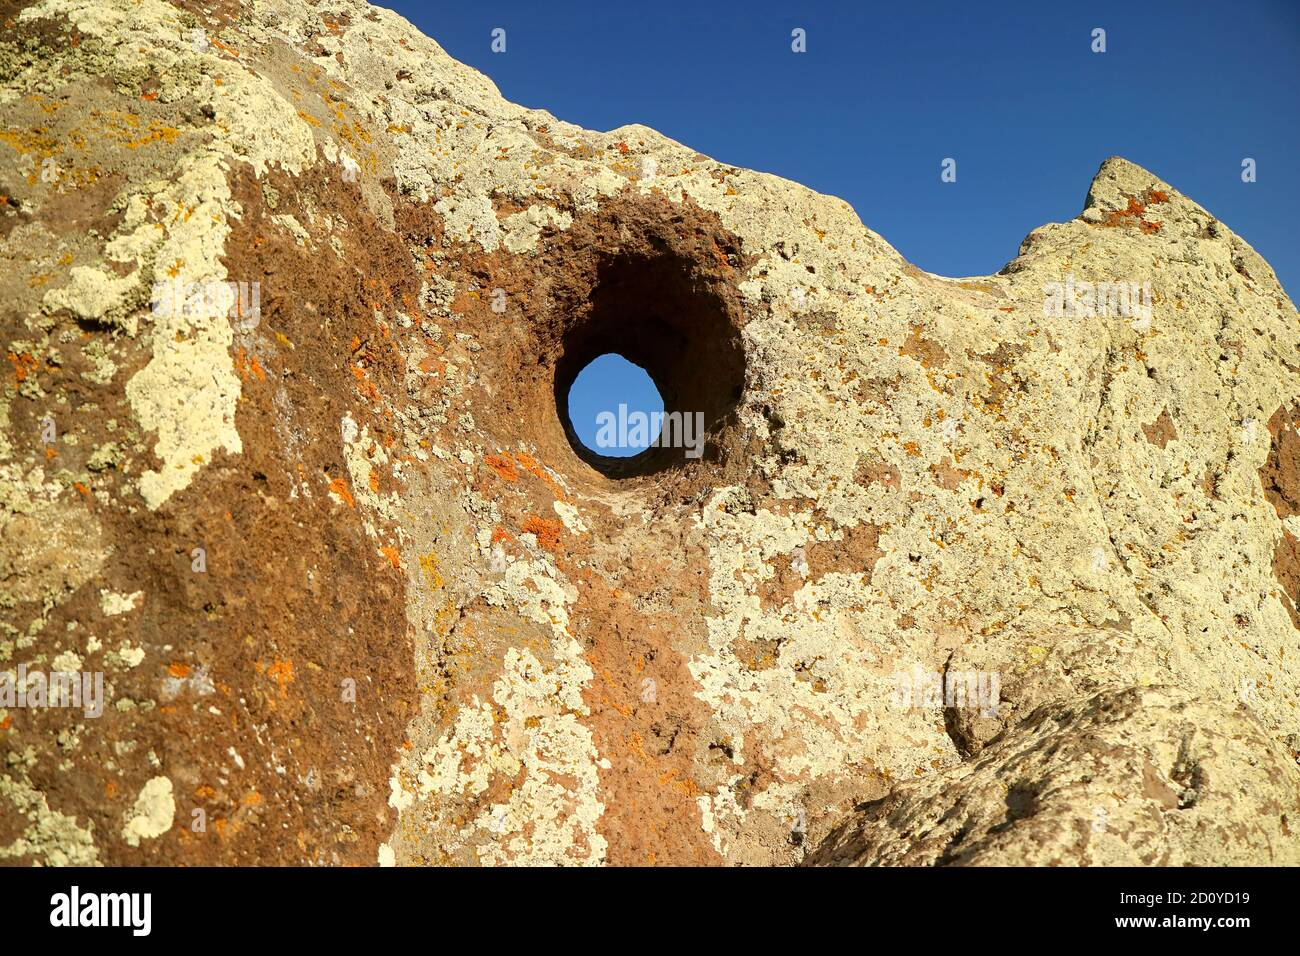 Carahunge means SPEAKING STONES in Armenian, the Holes of Stones on this Archaeological Site Create Whistling Sounds on a Windy Day, Syunik Province Stock Photo